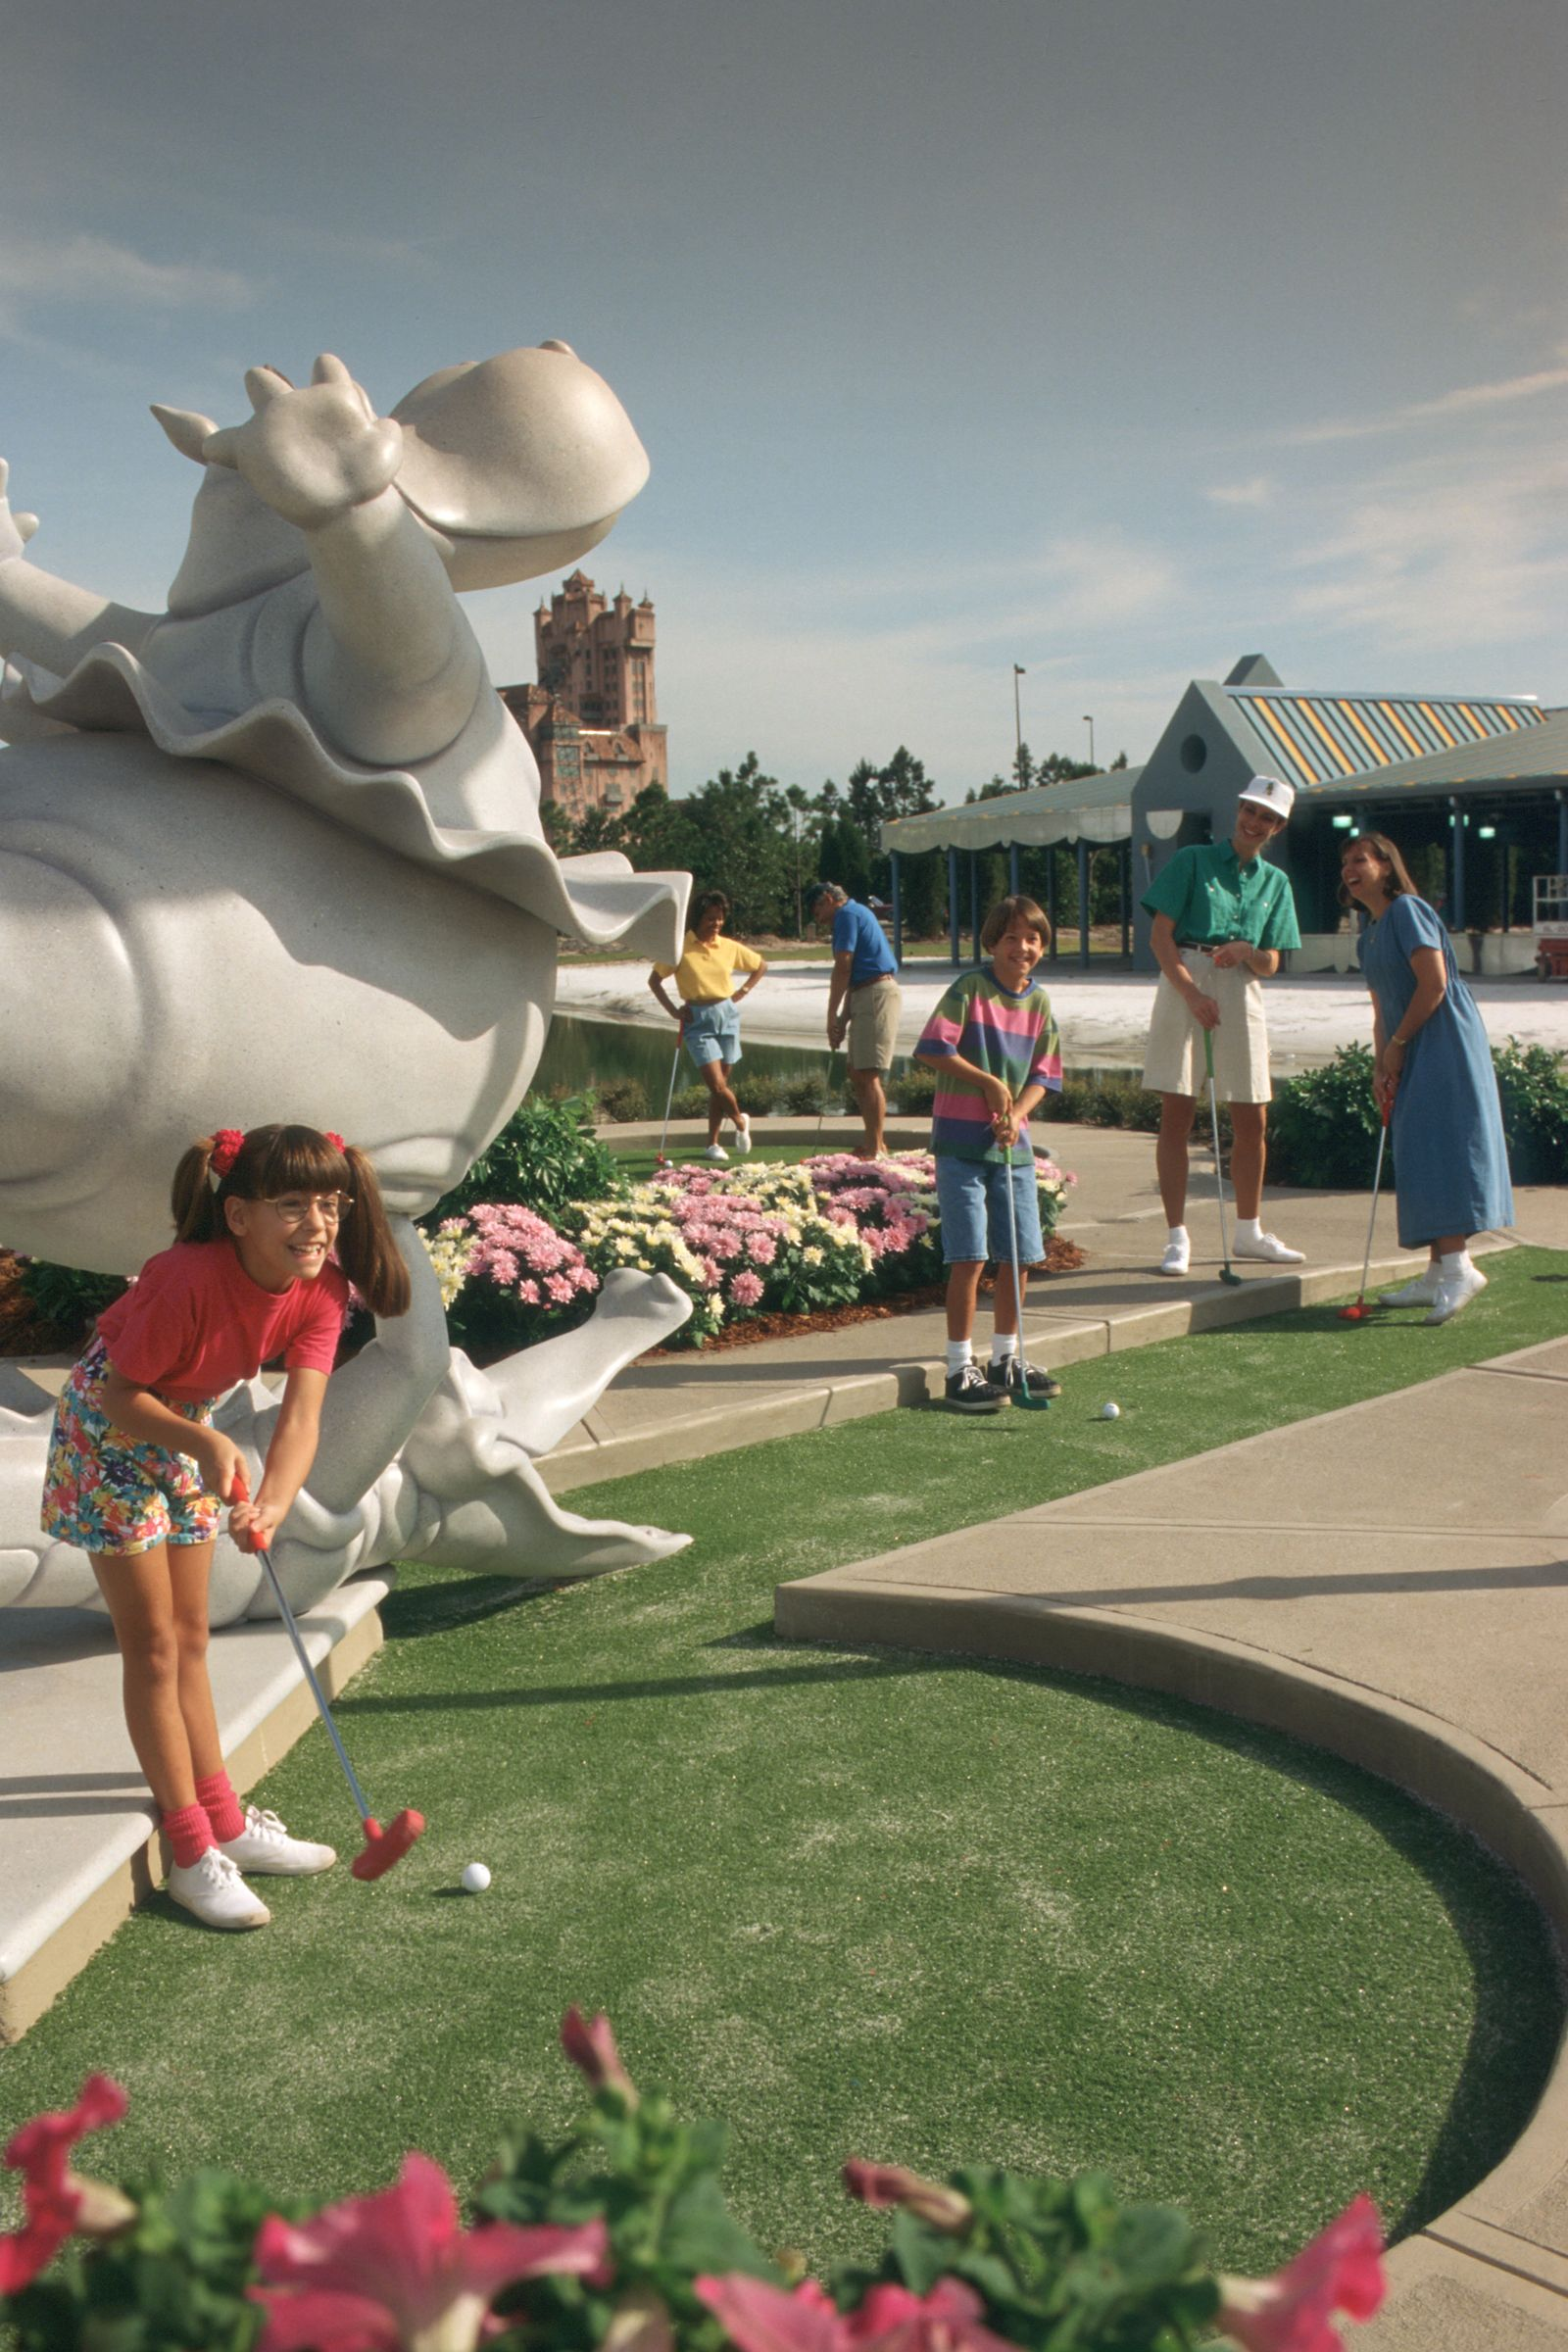 Make the most of your Disney vacation package by taking